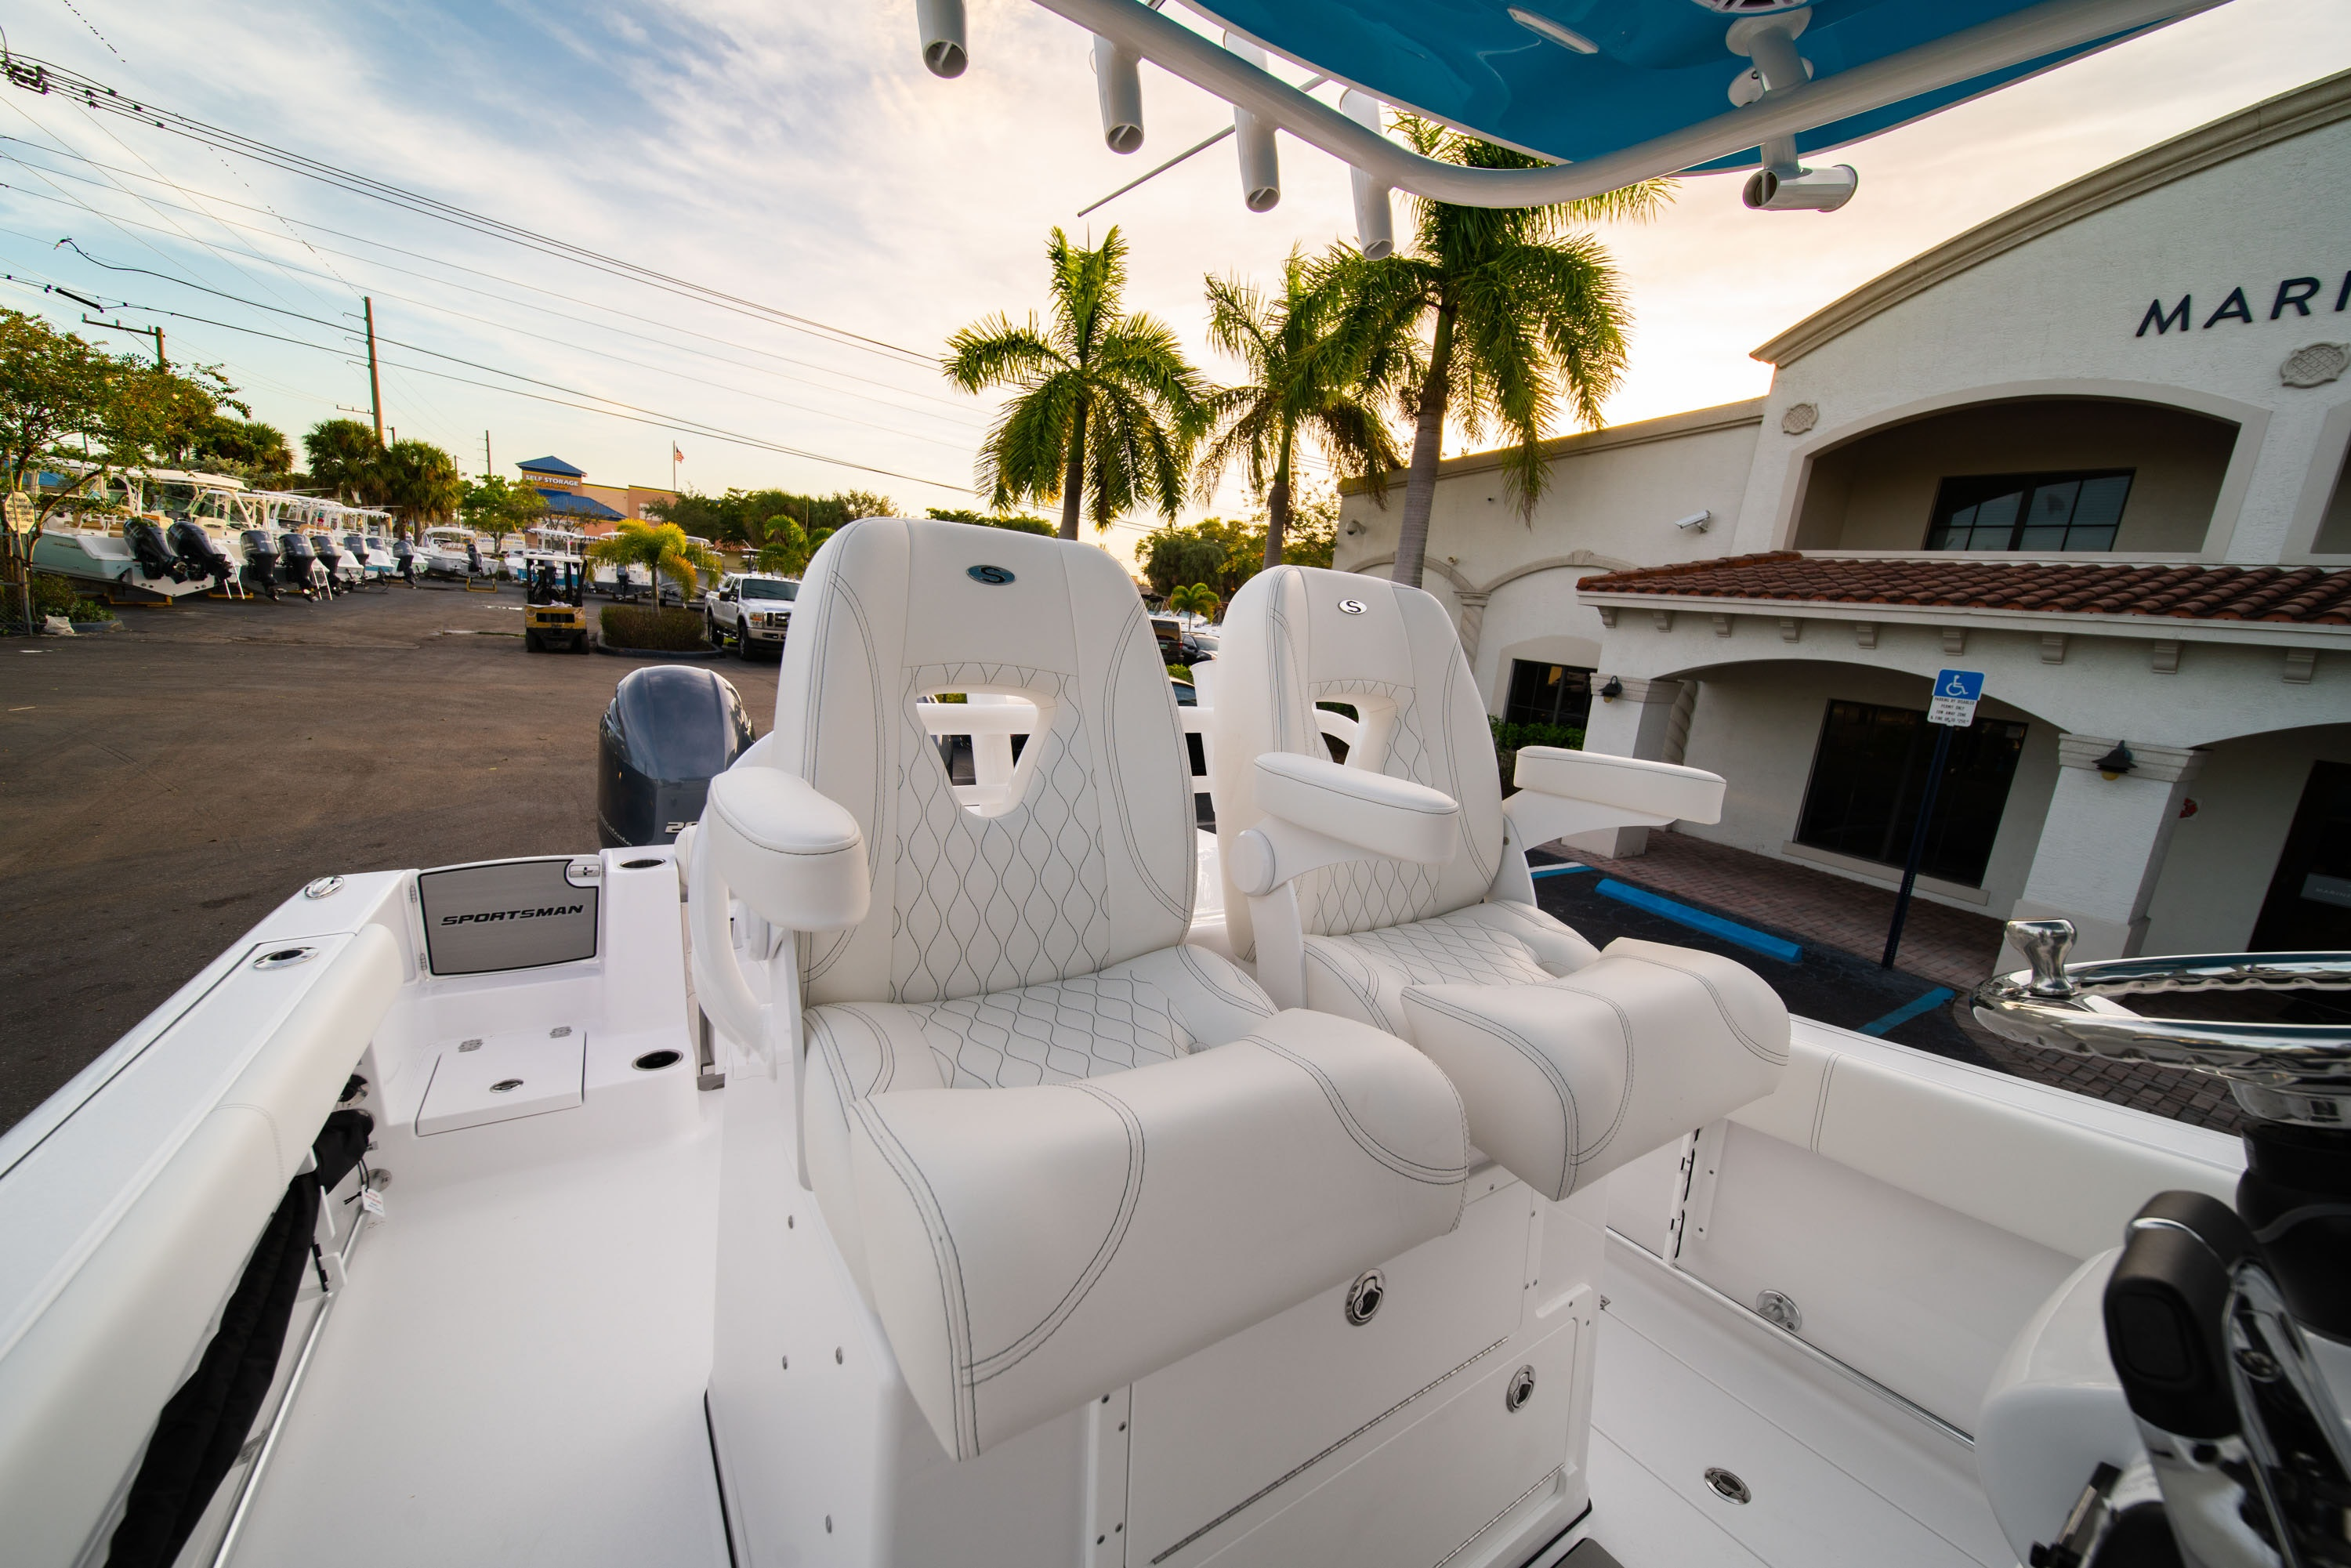 Thumbnail 39 for New 2020 Sportsman Open 282 Center Console boat for sale in West Palm Beach, FL